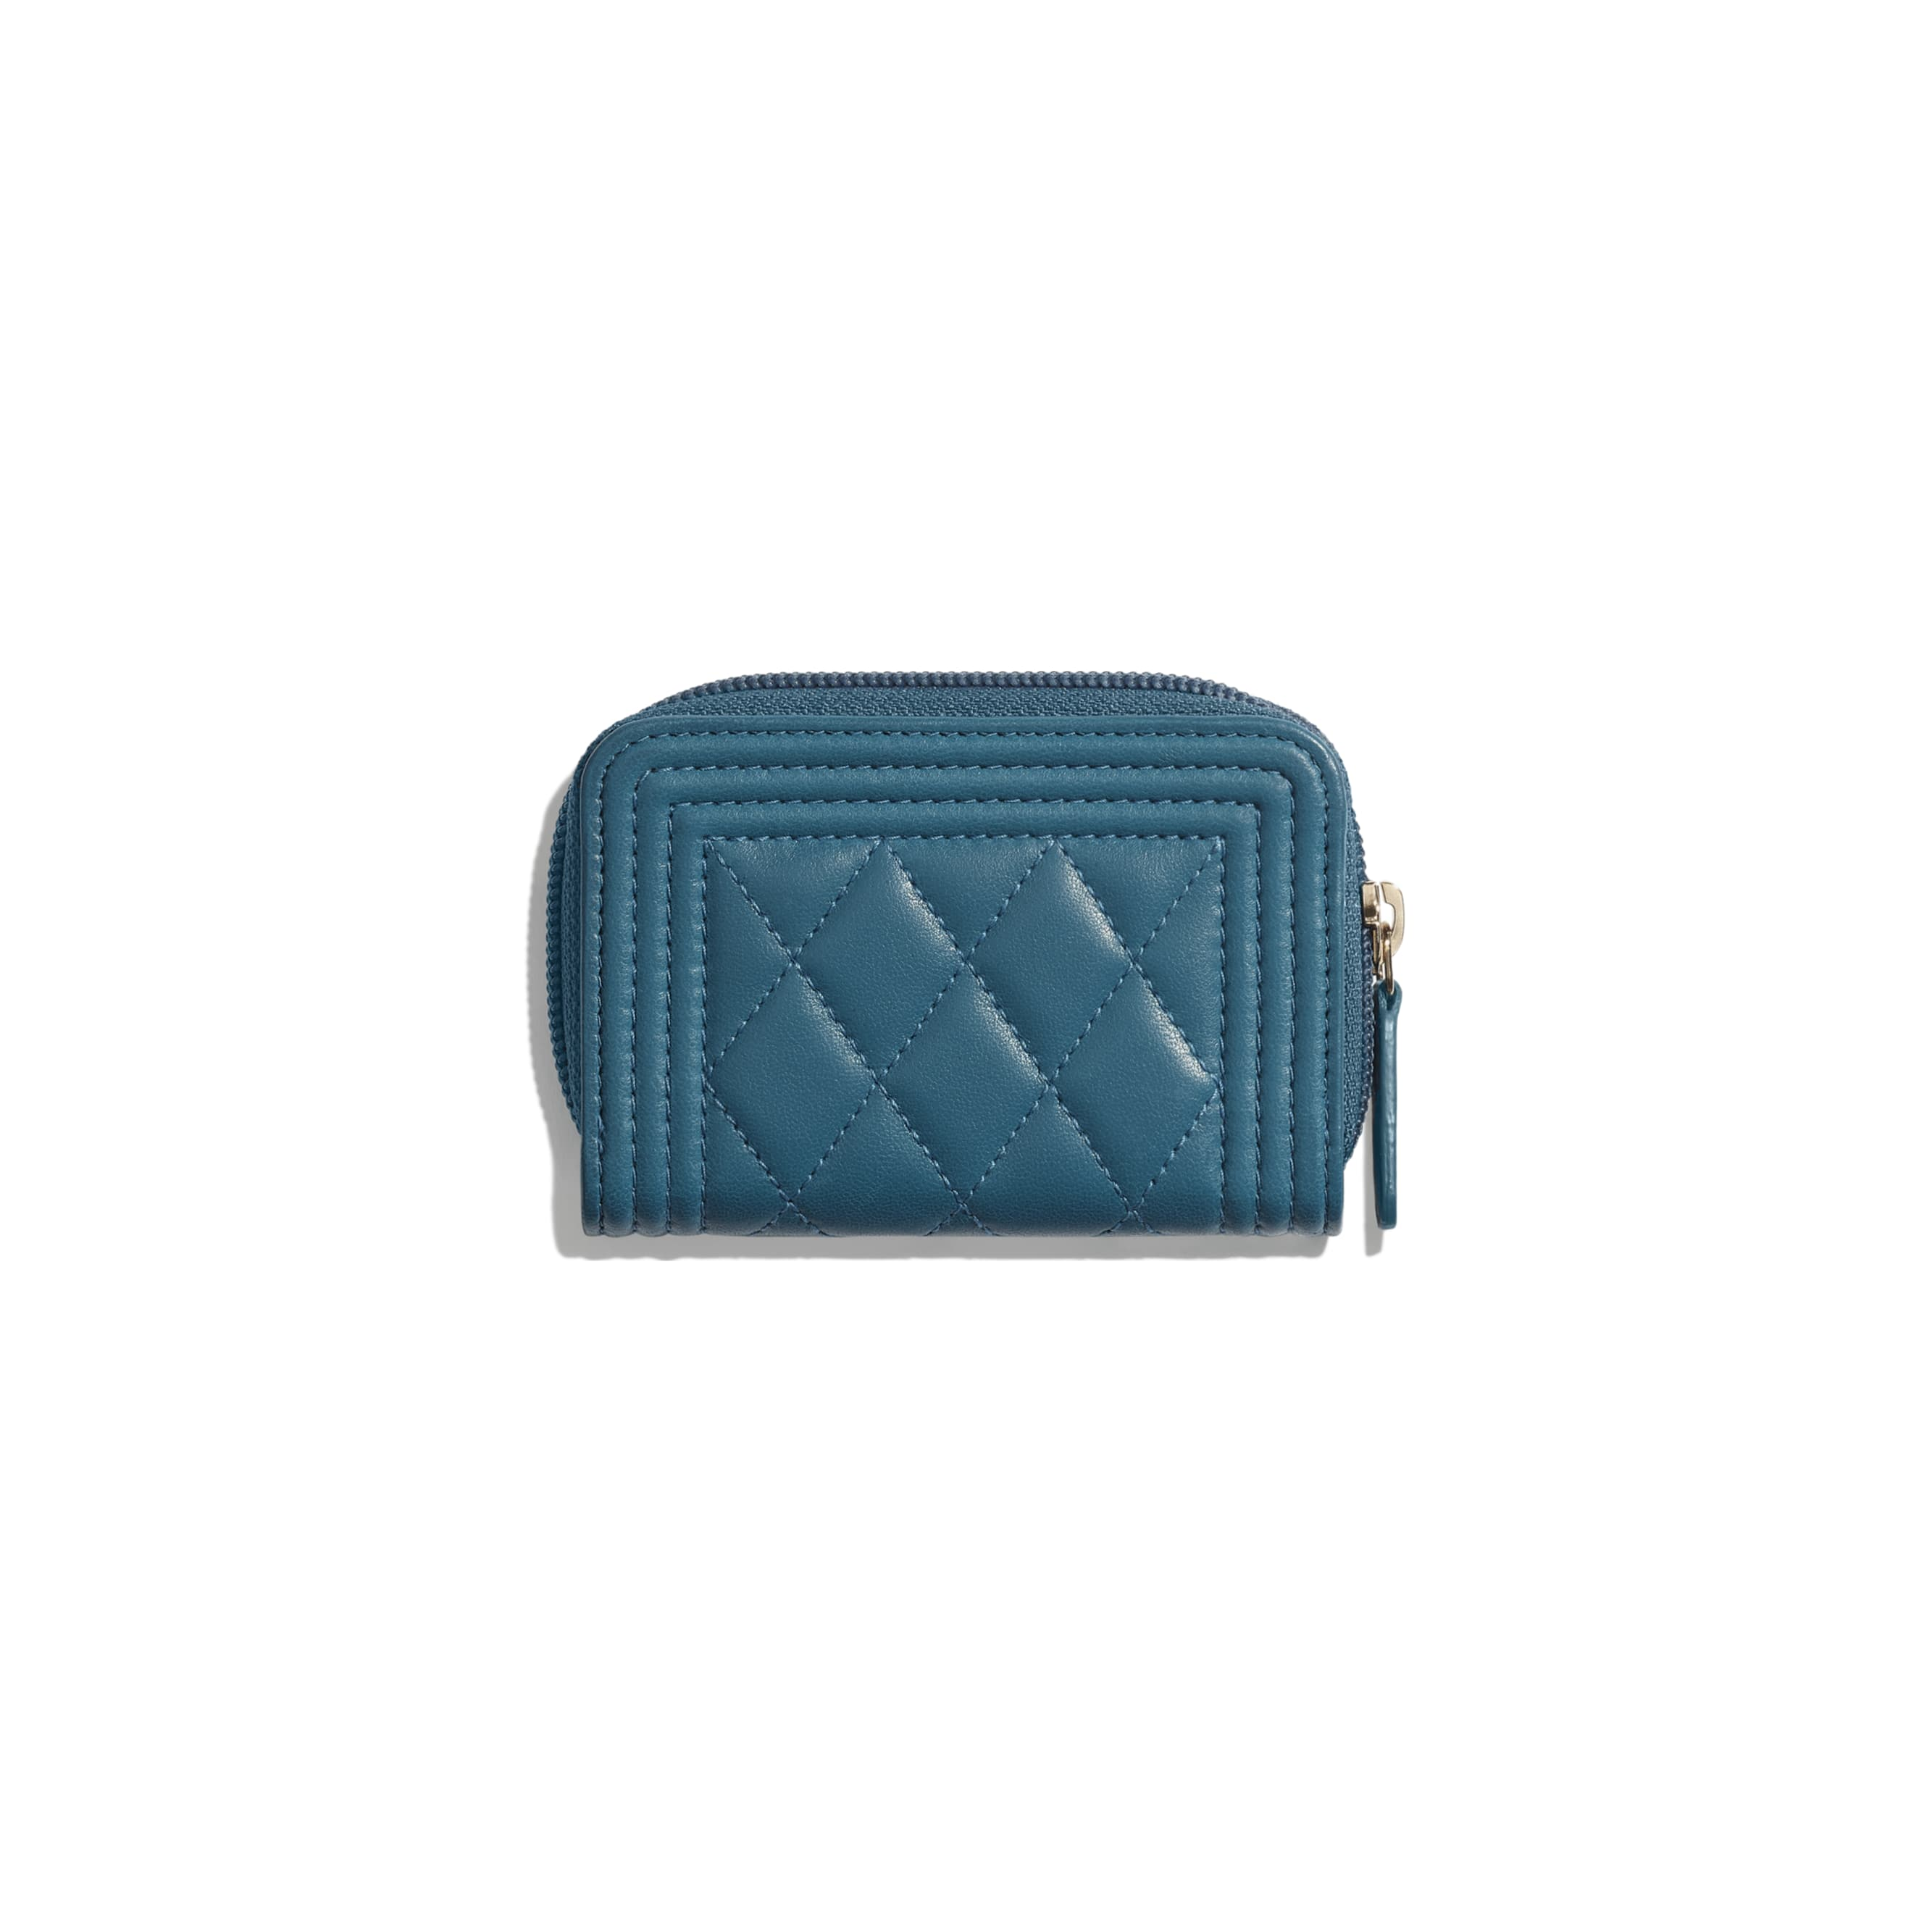 BOY CHANEL Zipped Coin Purse - Turquoise - Lambskin - Alternative view - see standard sized version